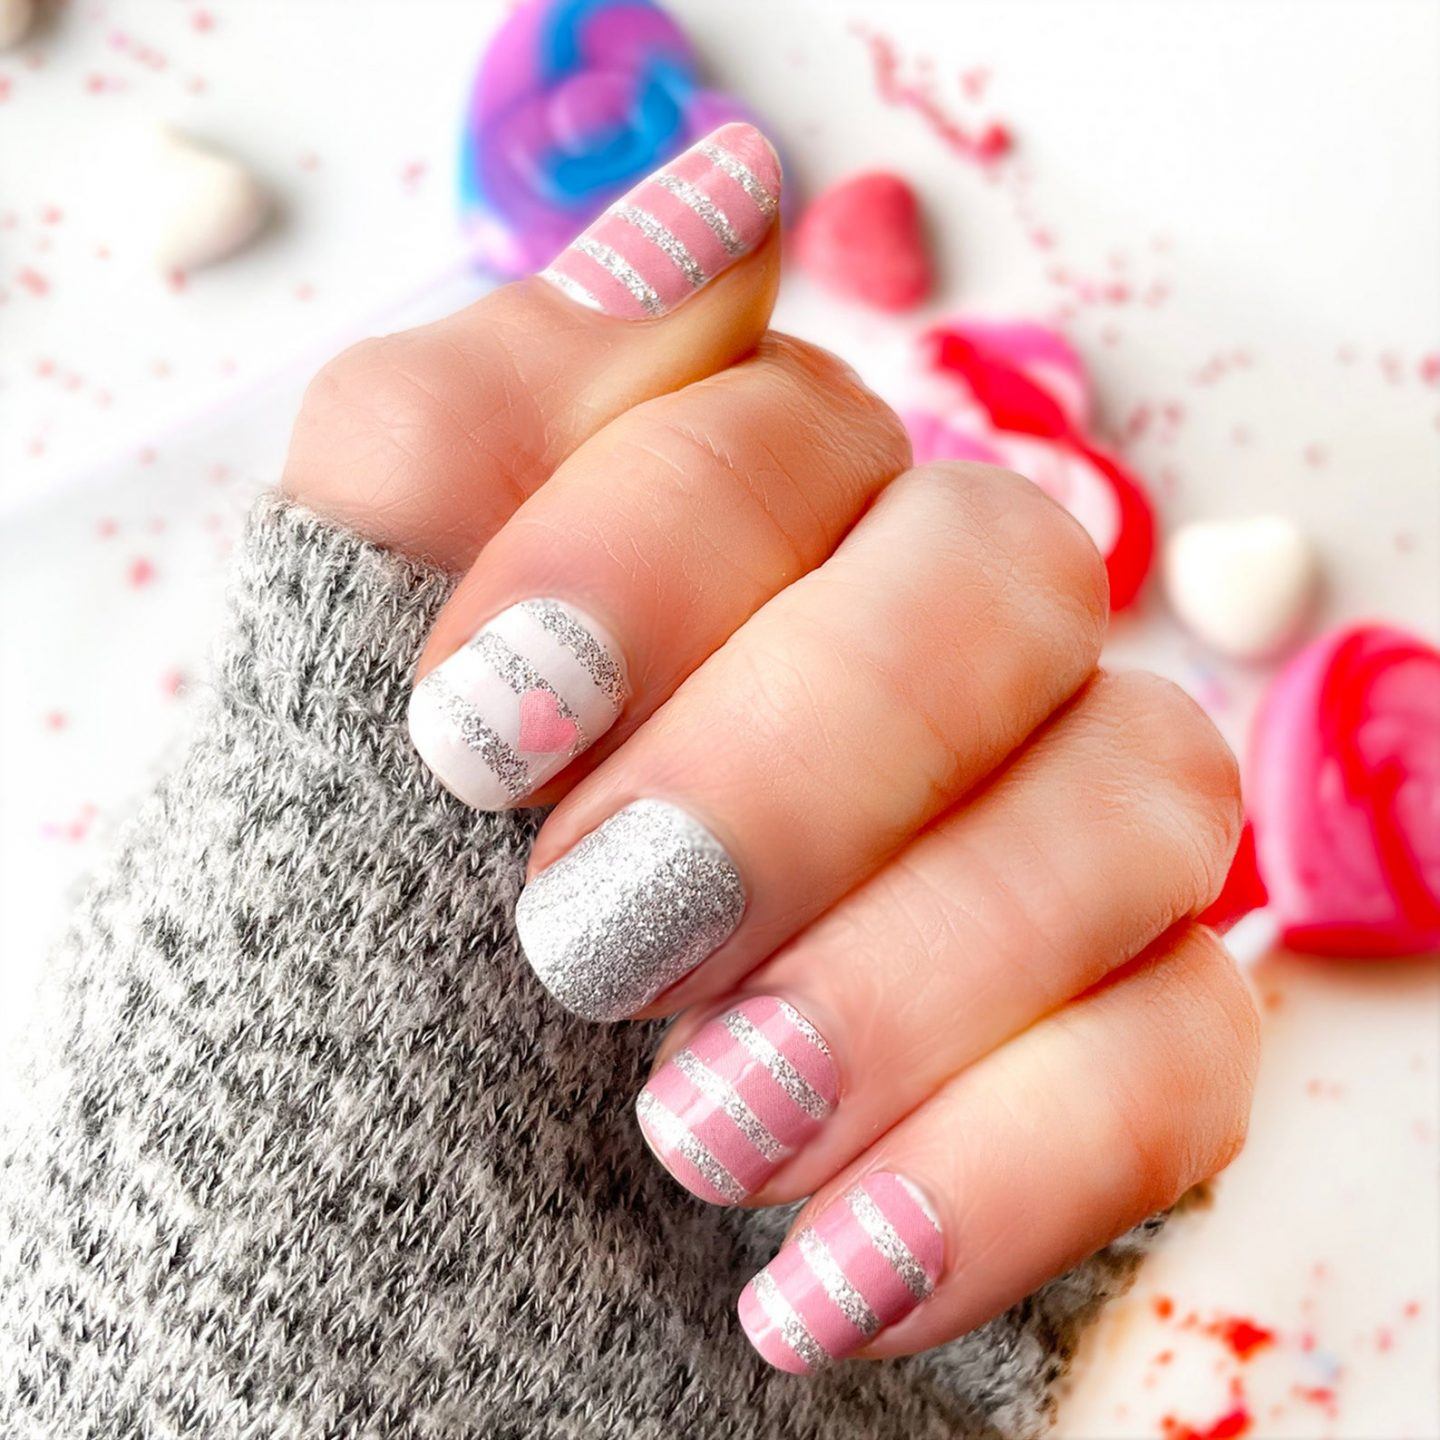 Cute silver and pink striped nails with glitter